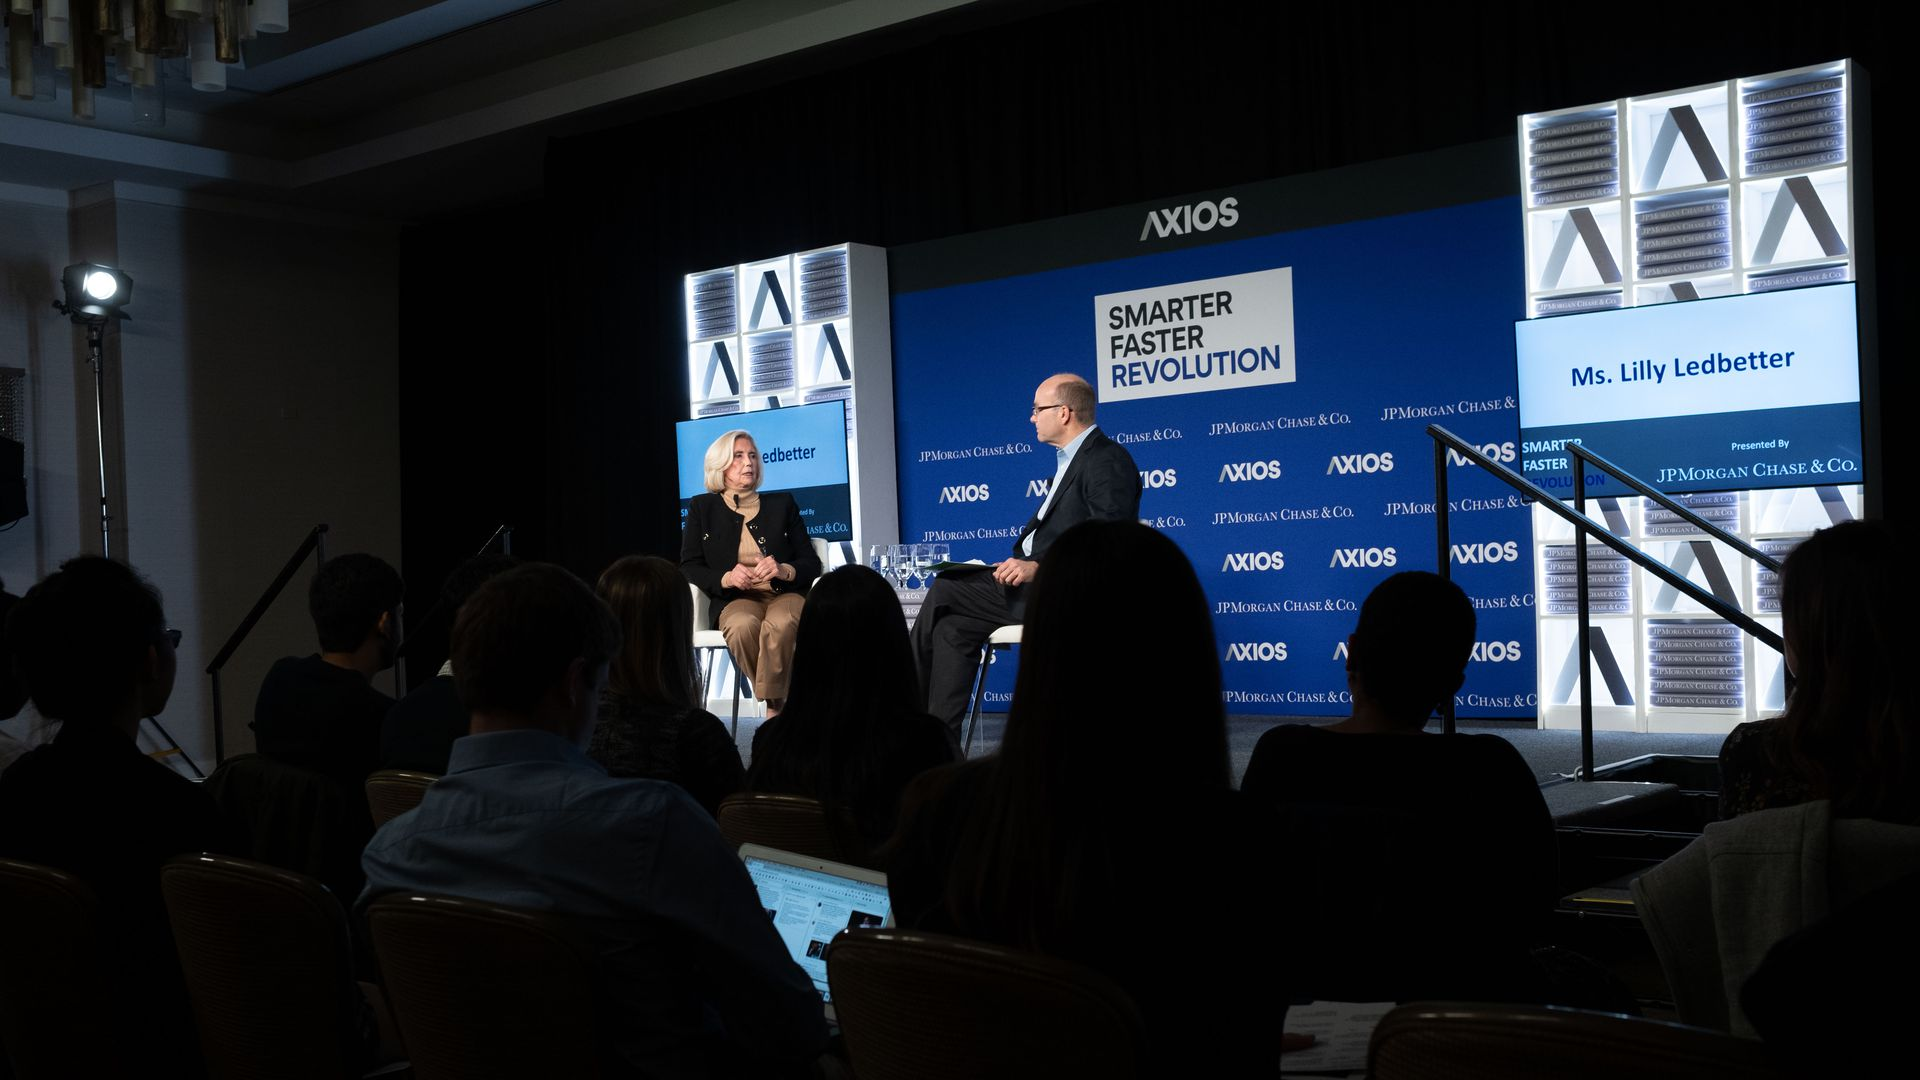 Activist Lilly Ledbetter and Axios' Mike Allen on the Axios stage